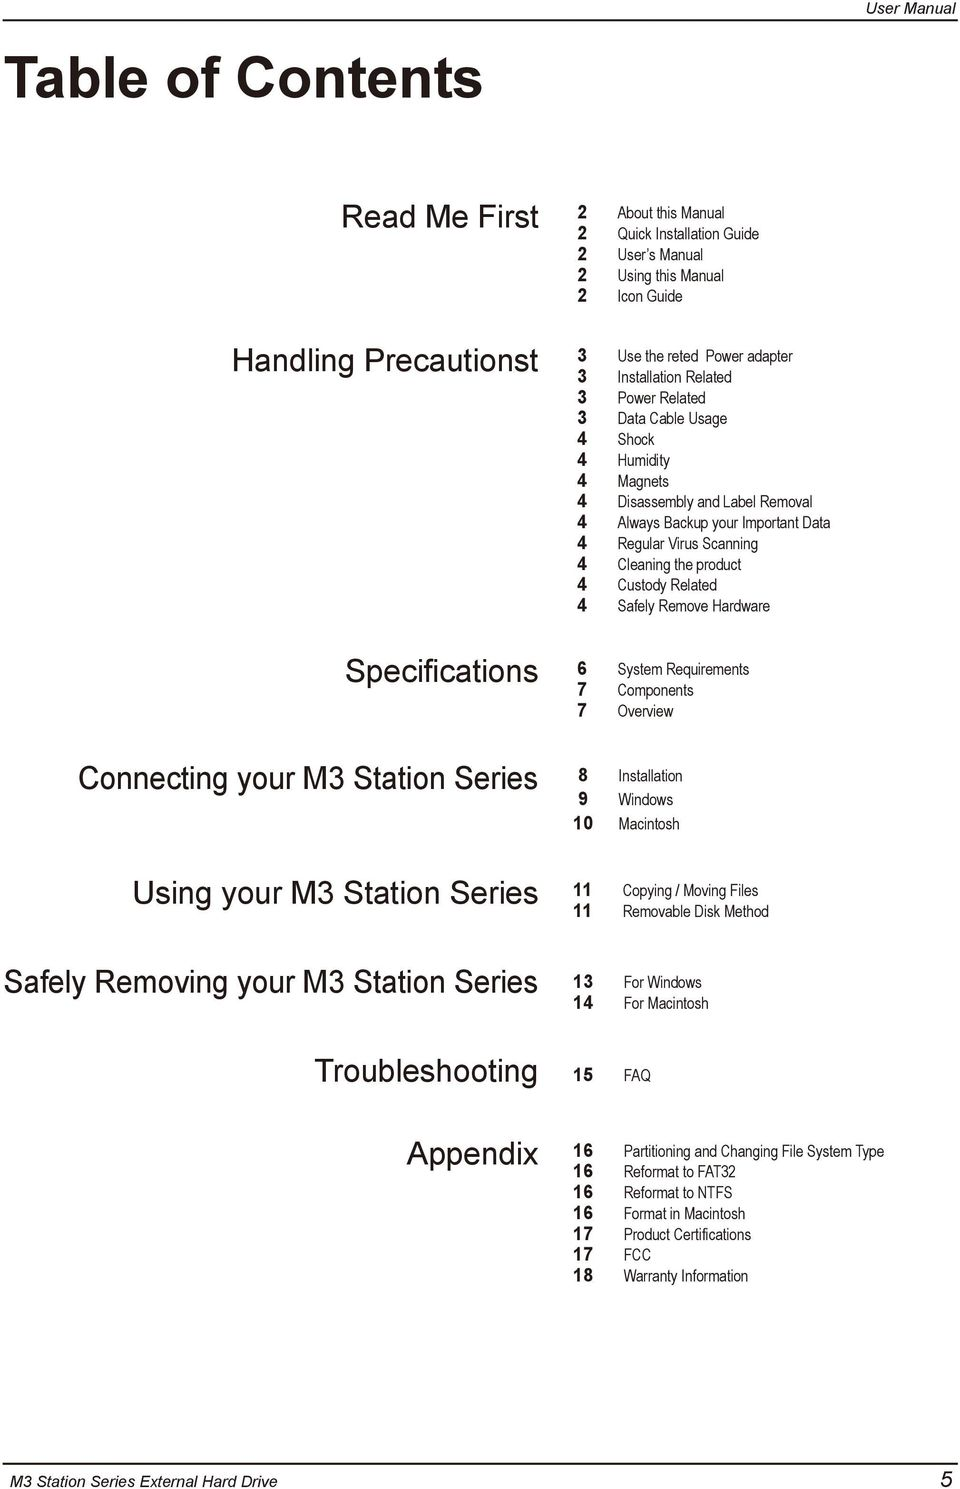 product 4 Custody Related 4 Safely Remove Hardware Specifications 6 System Requirements 7 Components 7 Overview Connecting your M3 Station Series 8 Installation 9 Windows 10 Macintosh Using your M3